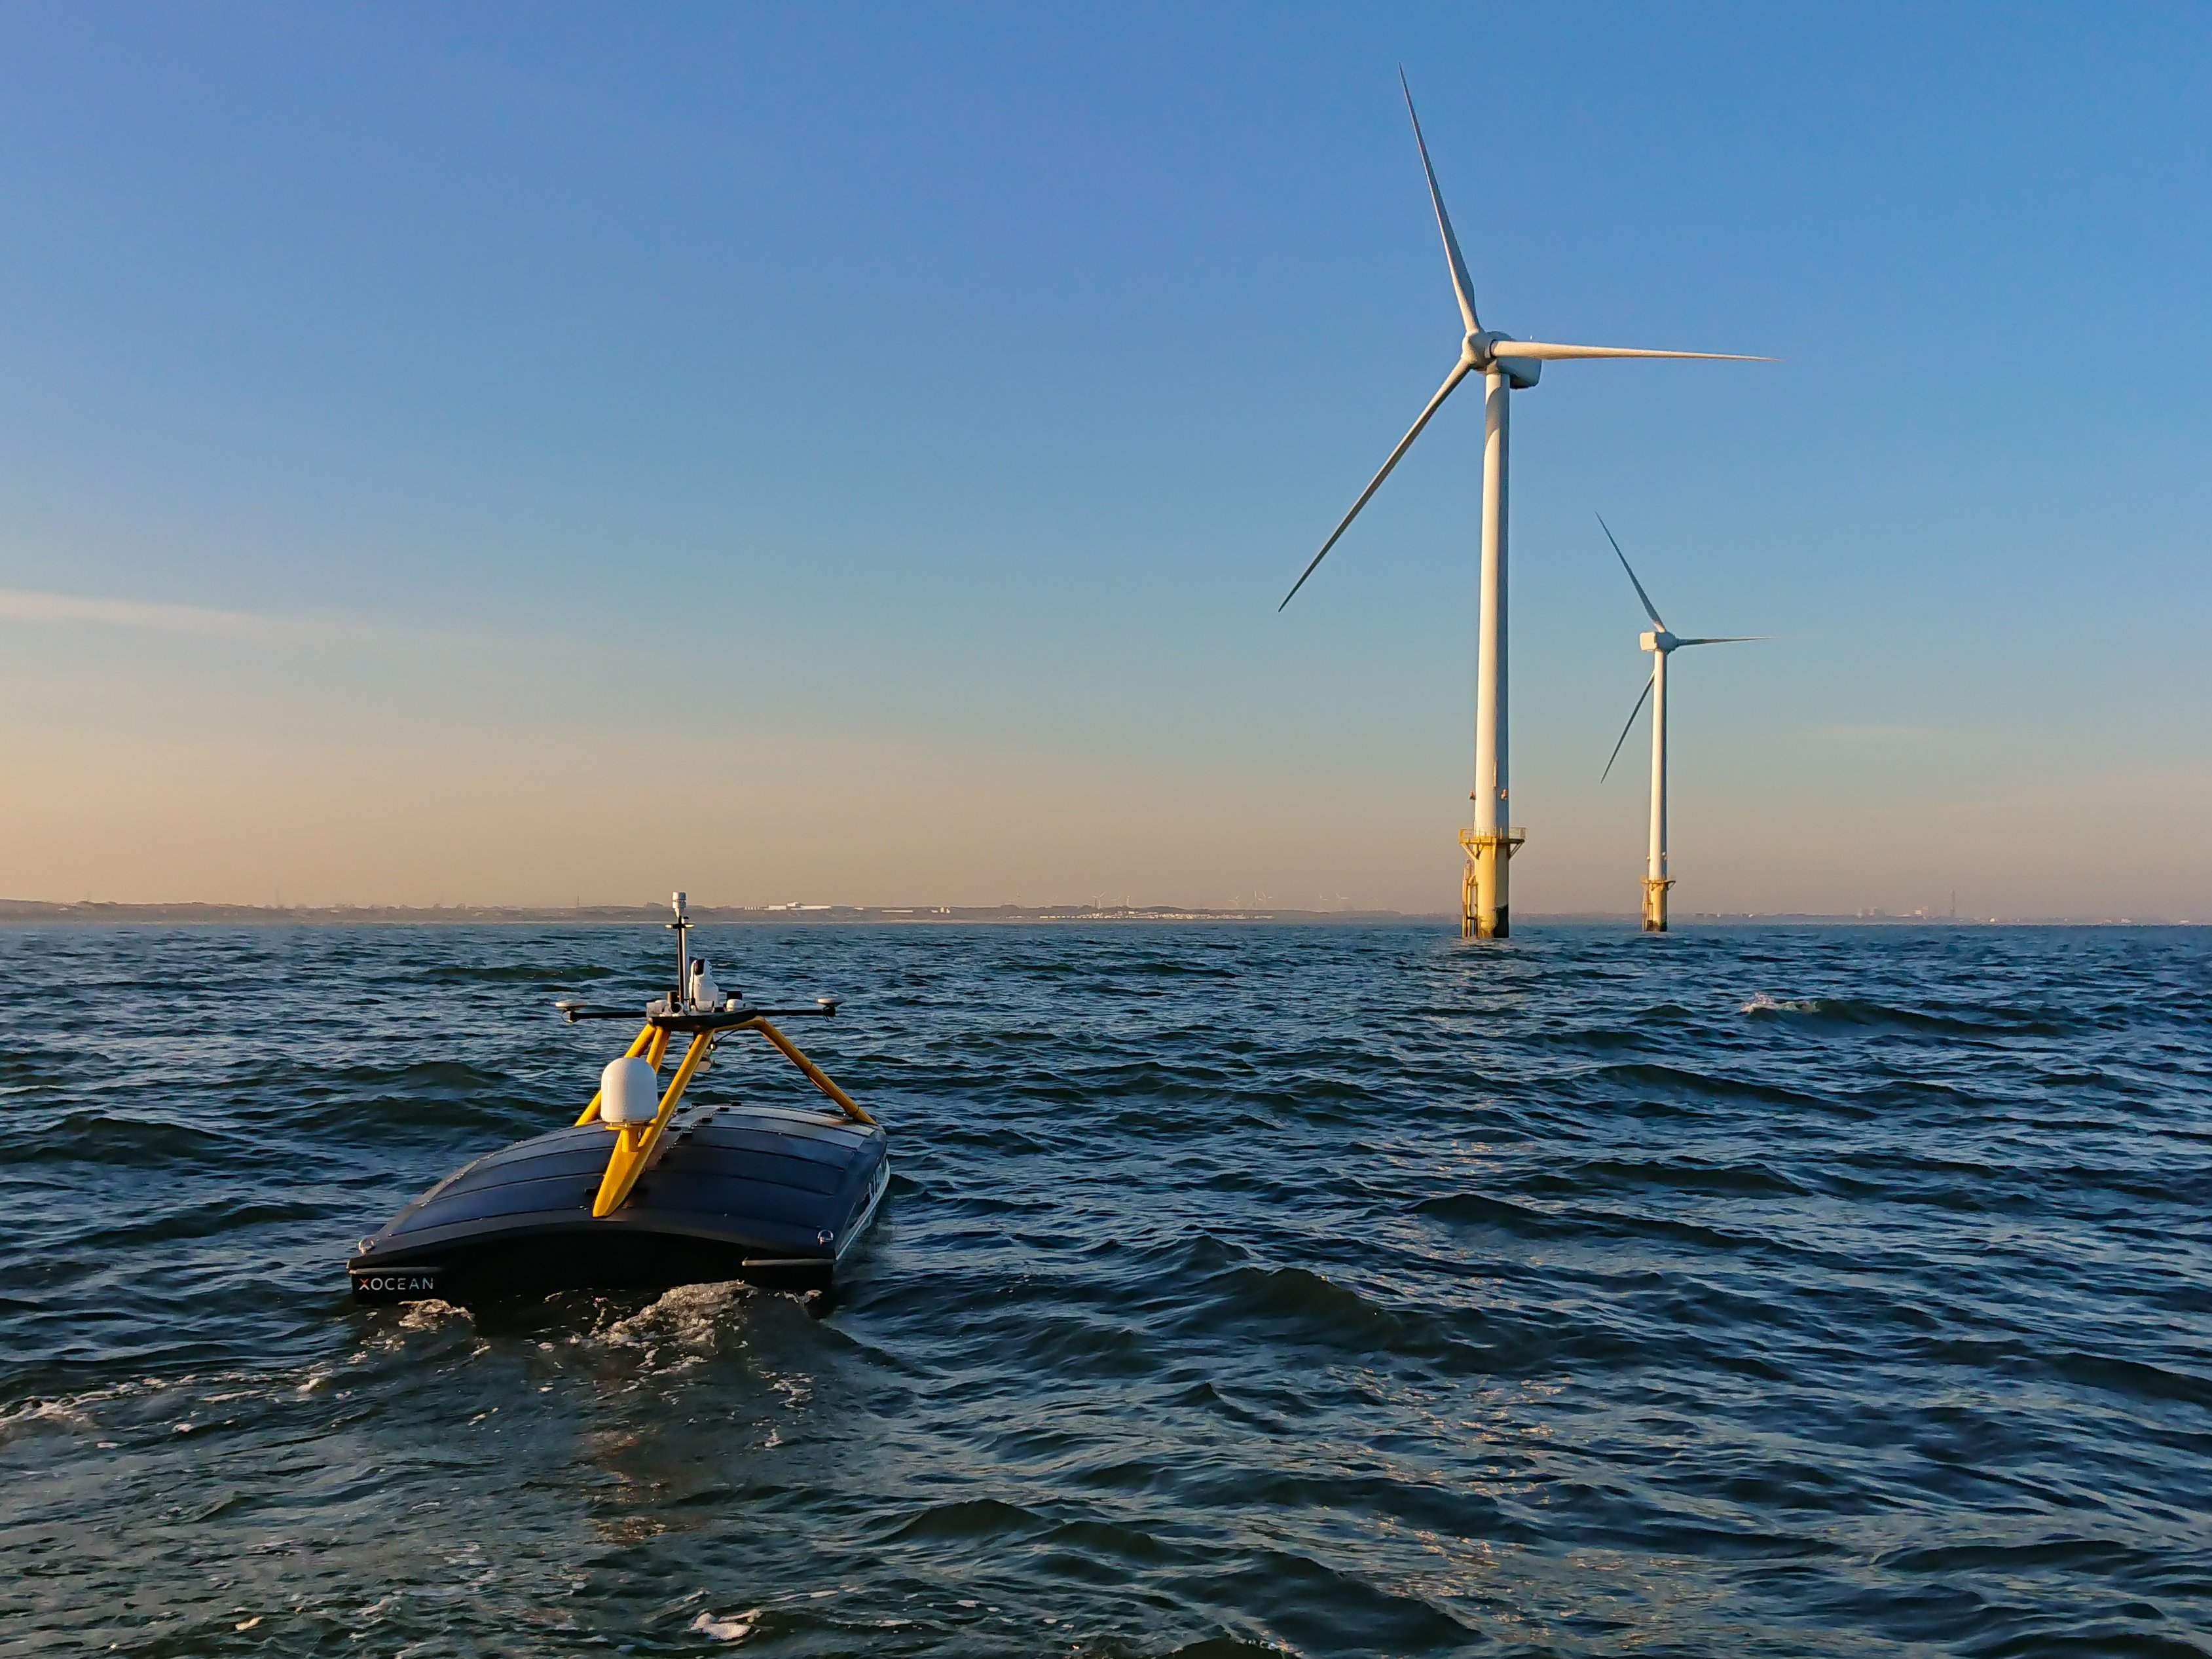 XOCEAN completes unmanned seabed survey of the Gwynt y Môr offshore wind farm for innogy Renewables UK